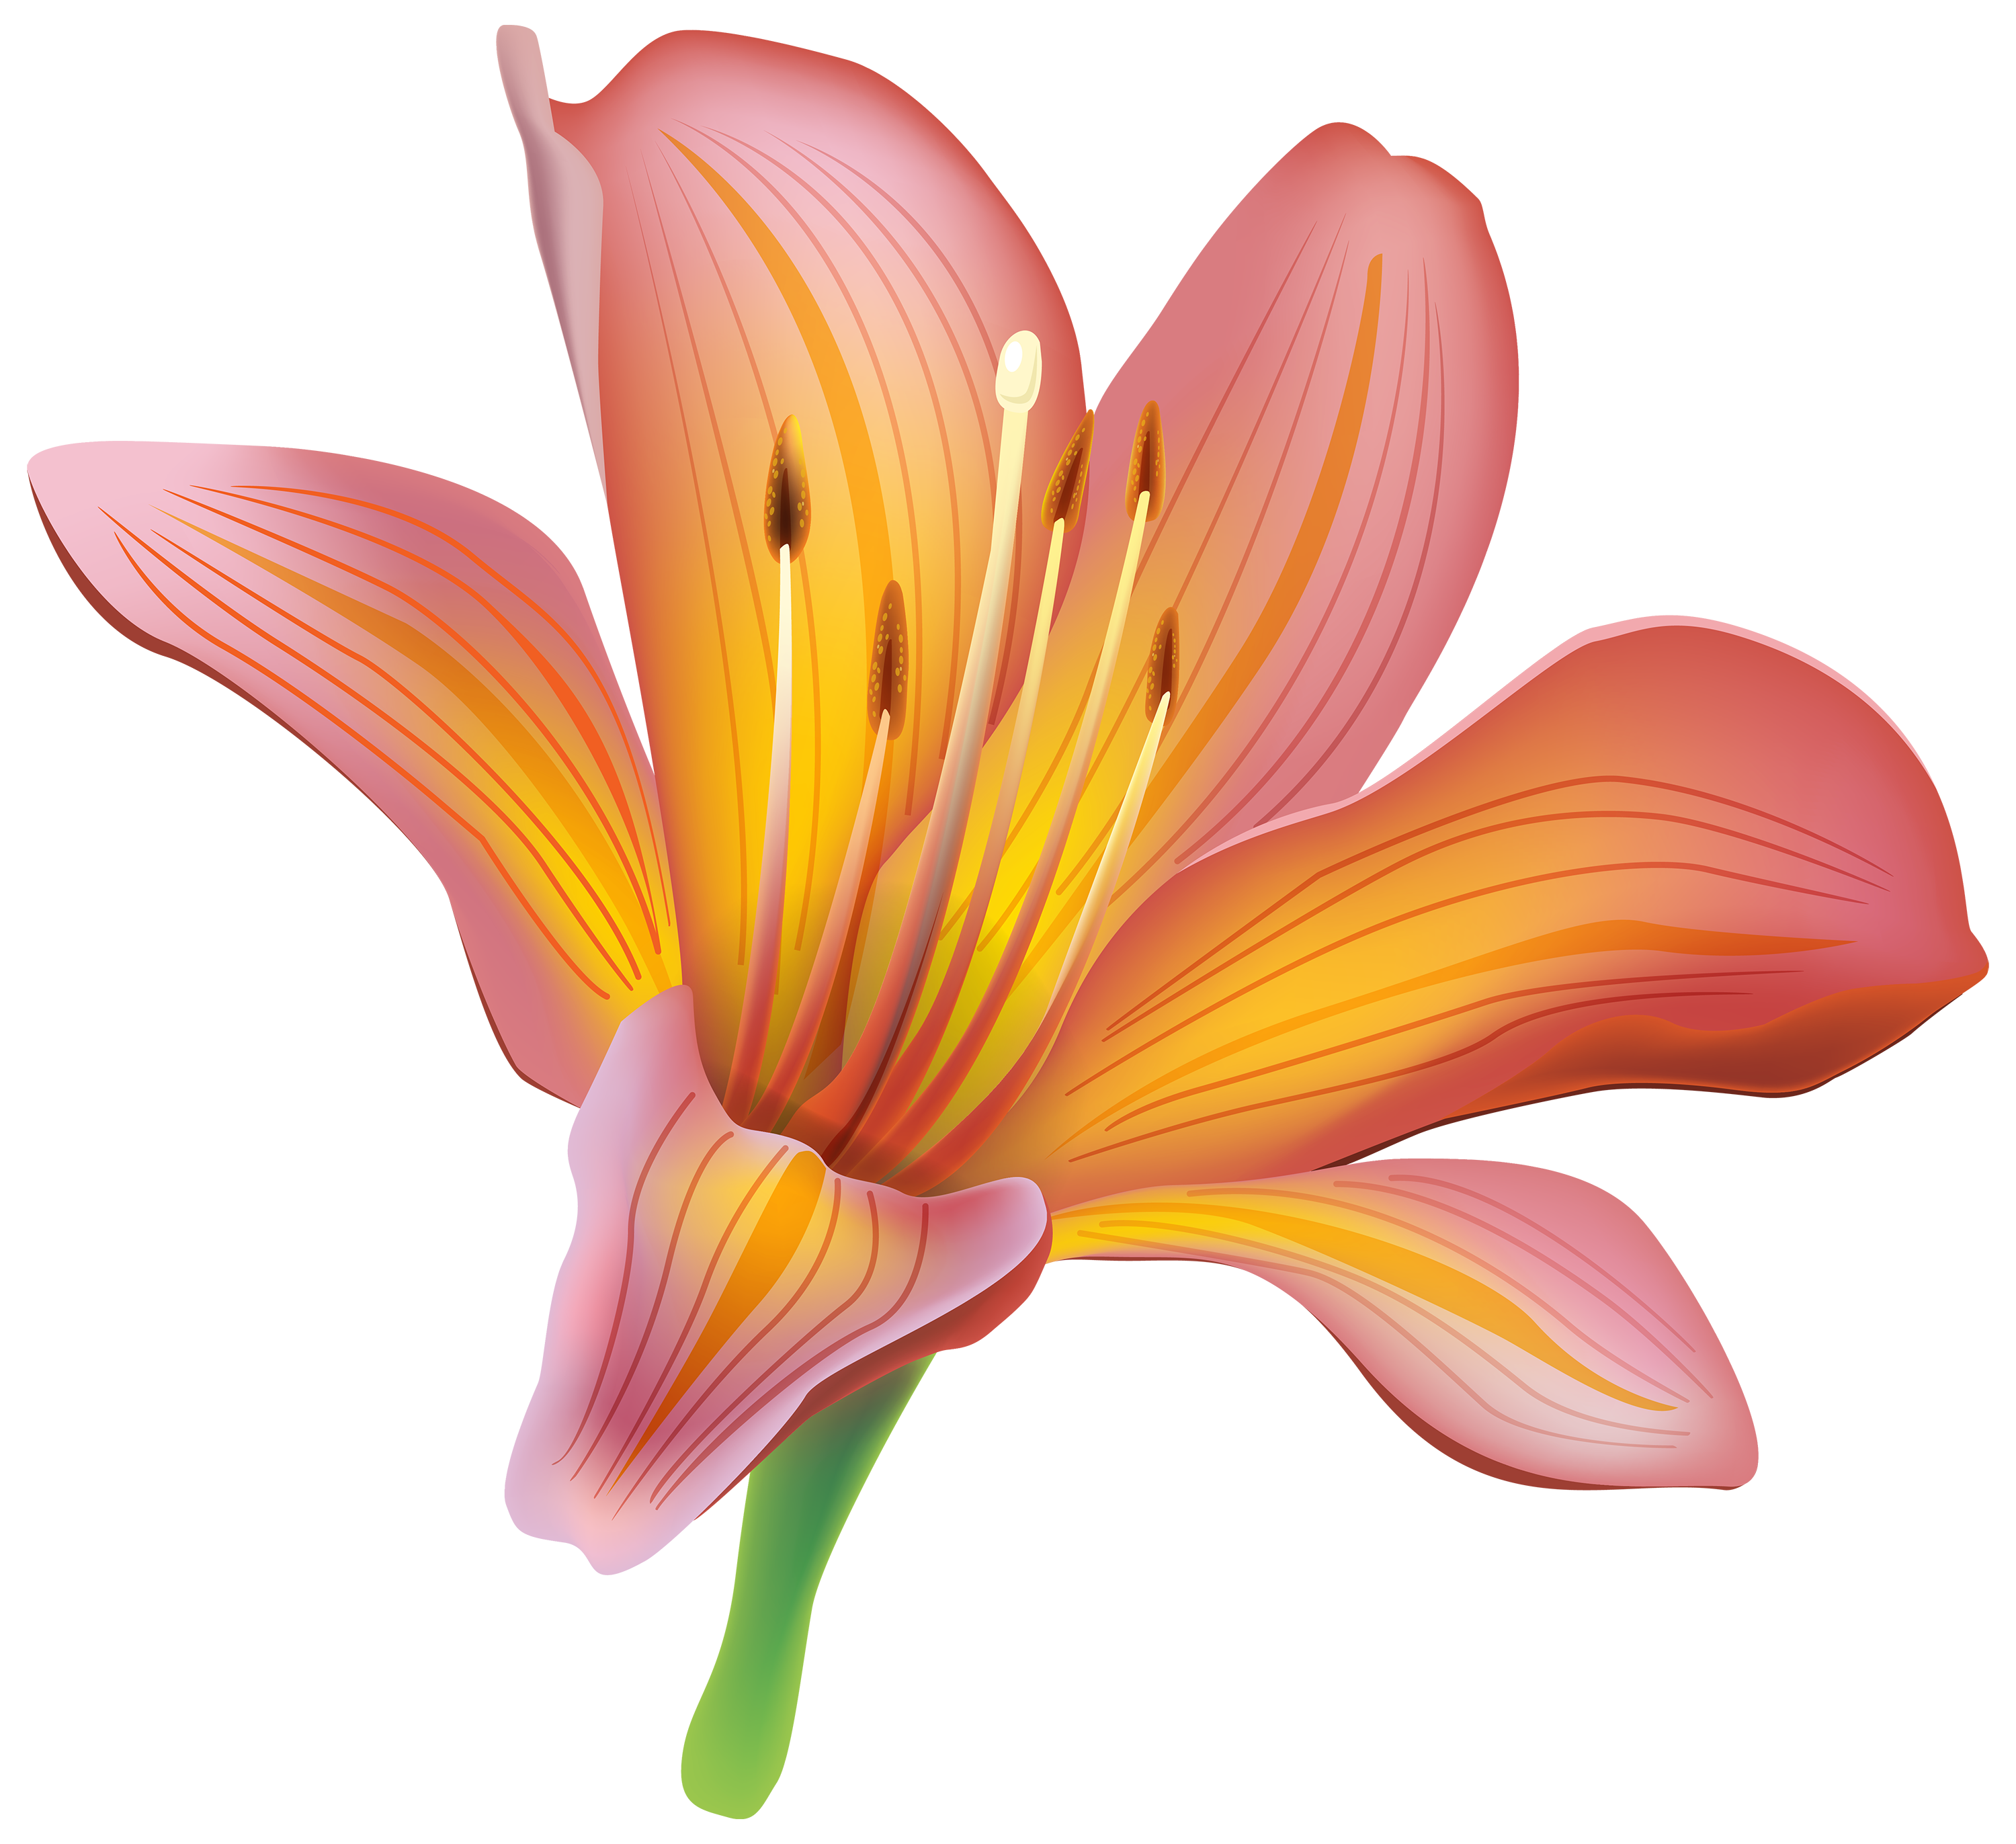 Vintage Lily Free Download Transparent